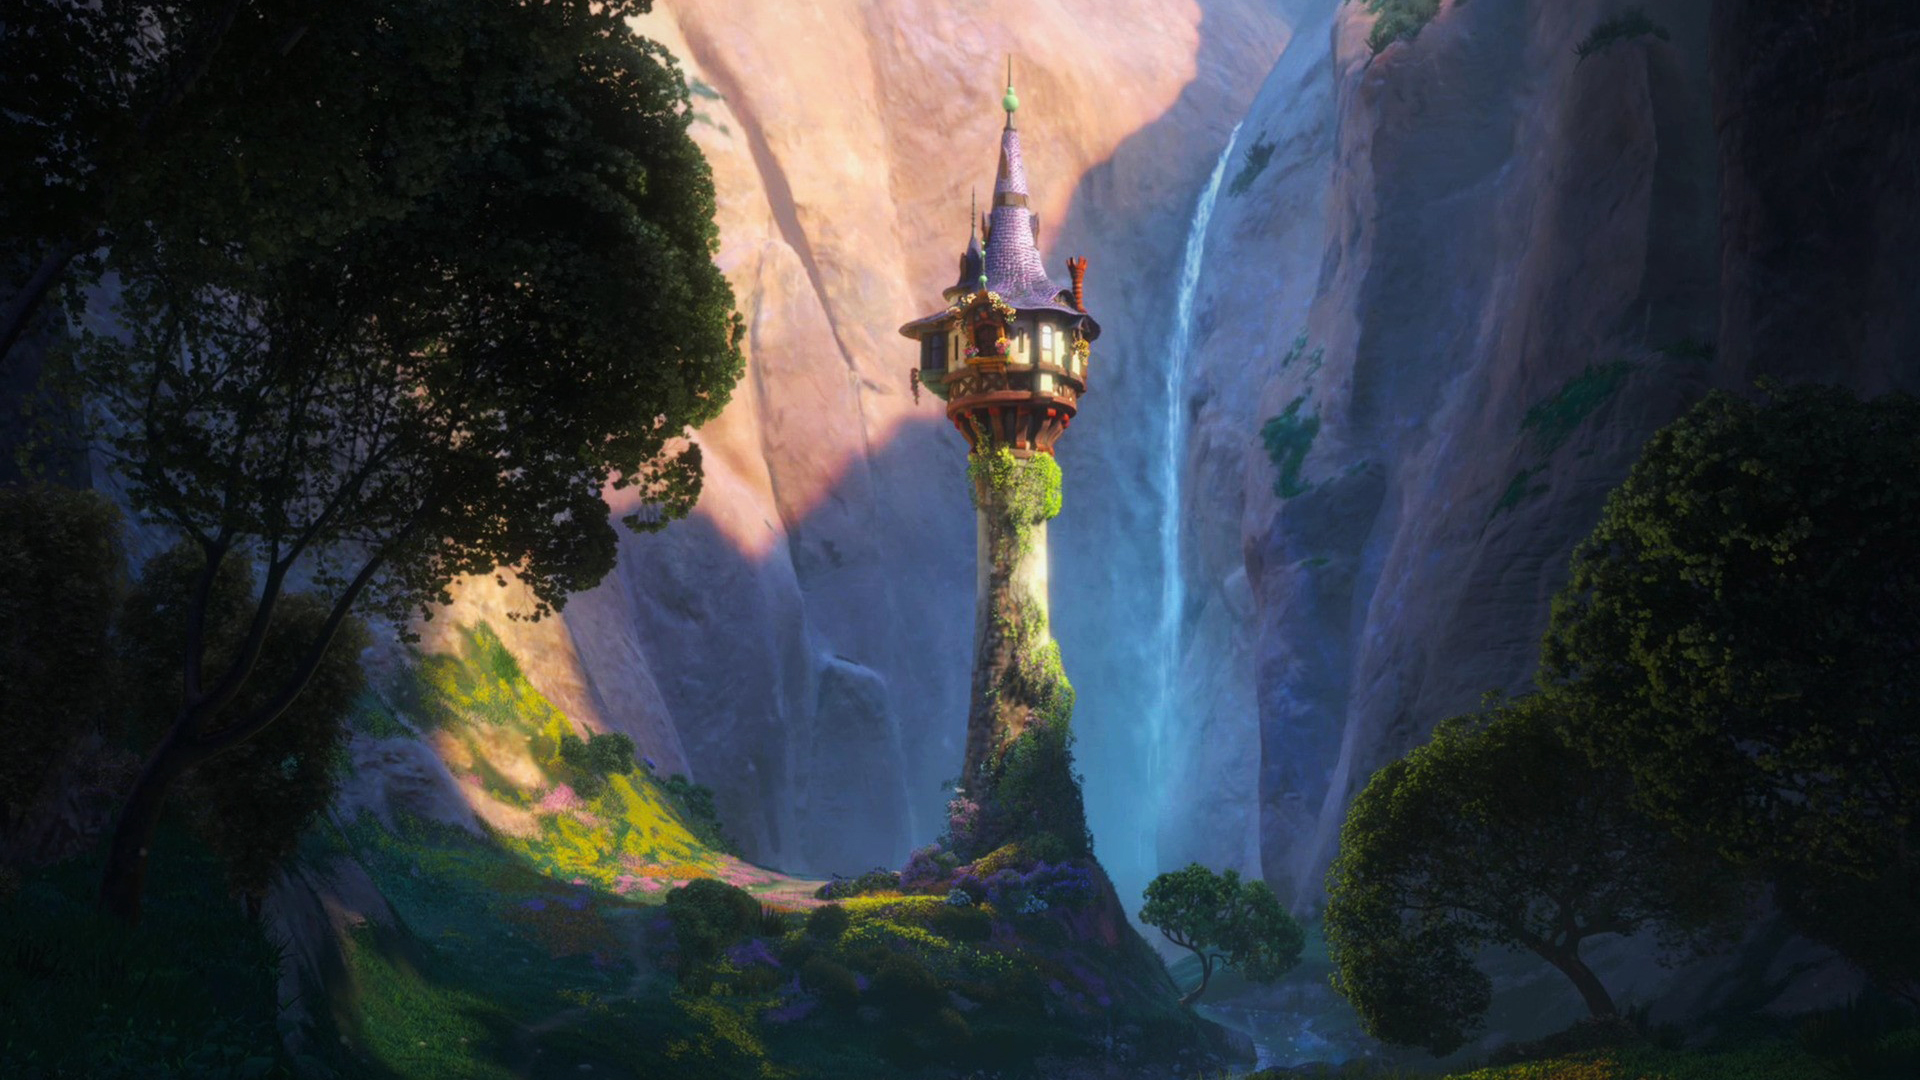 Tangled HD wallpaper 1920x1080 3   hebusorg   High Definition 1920x1080